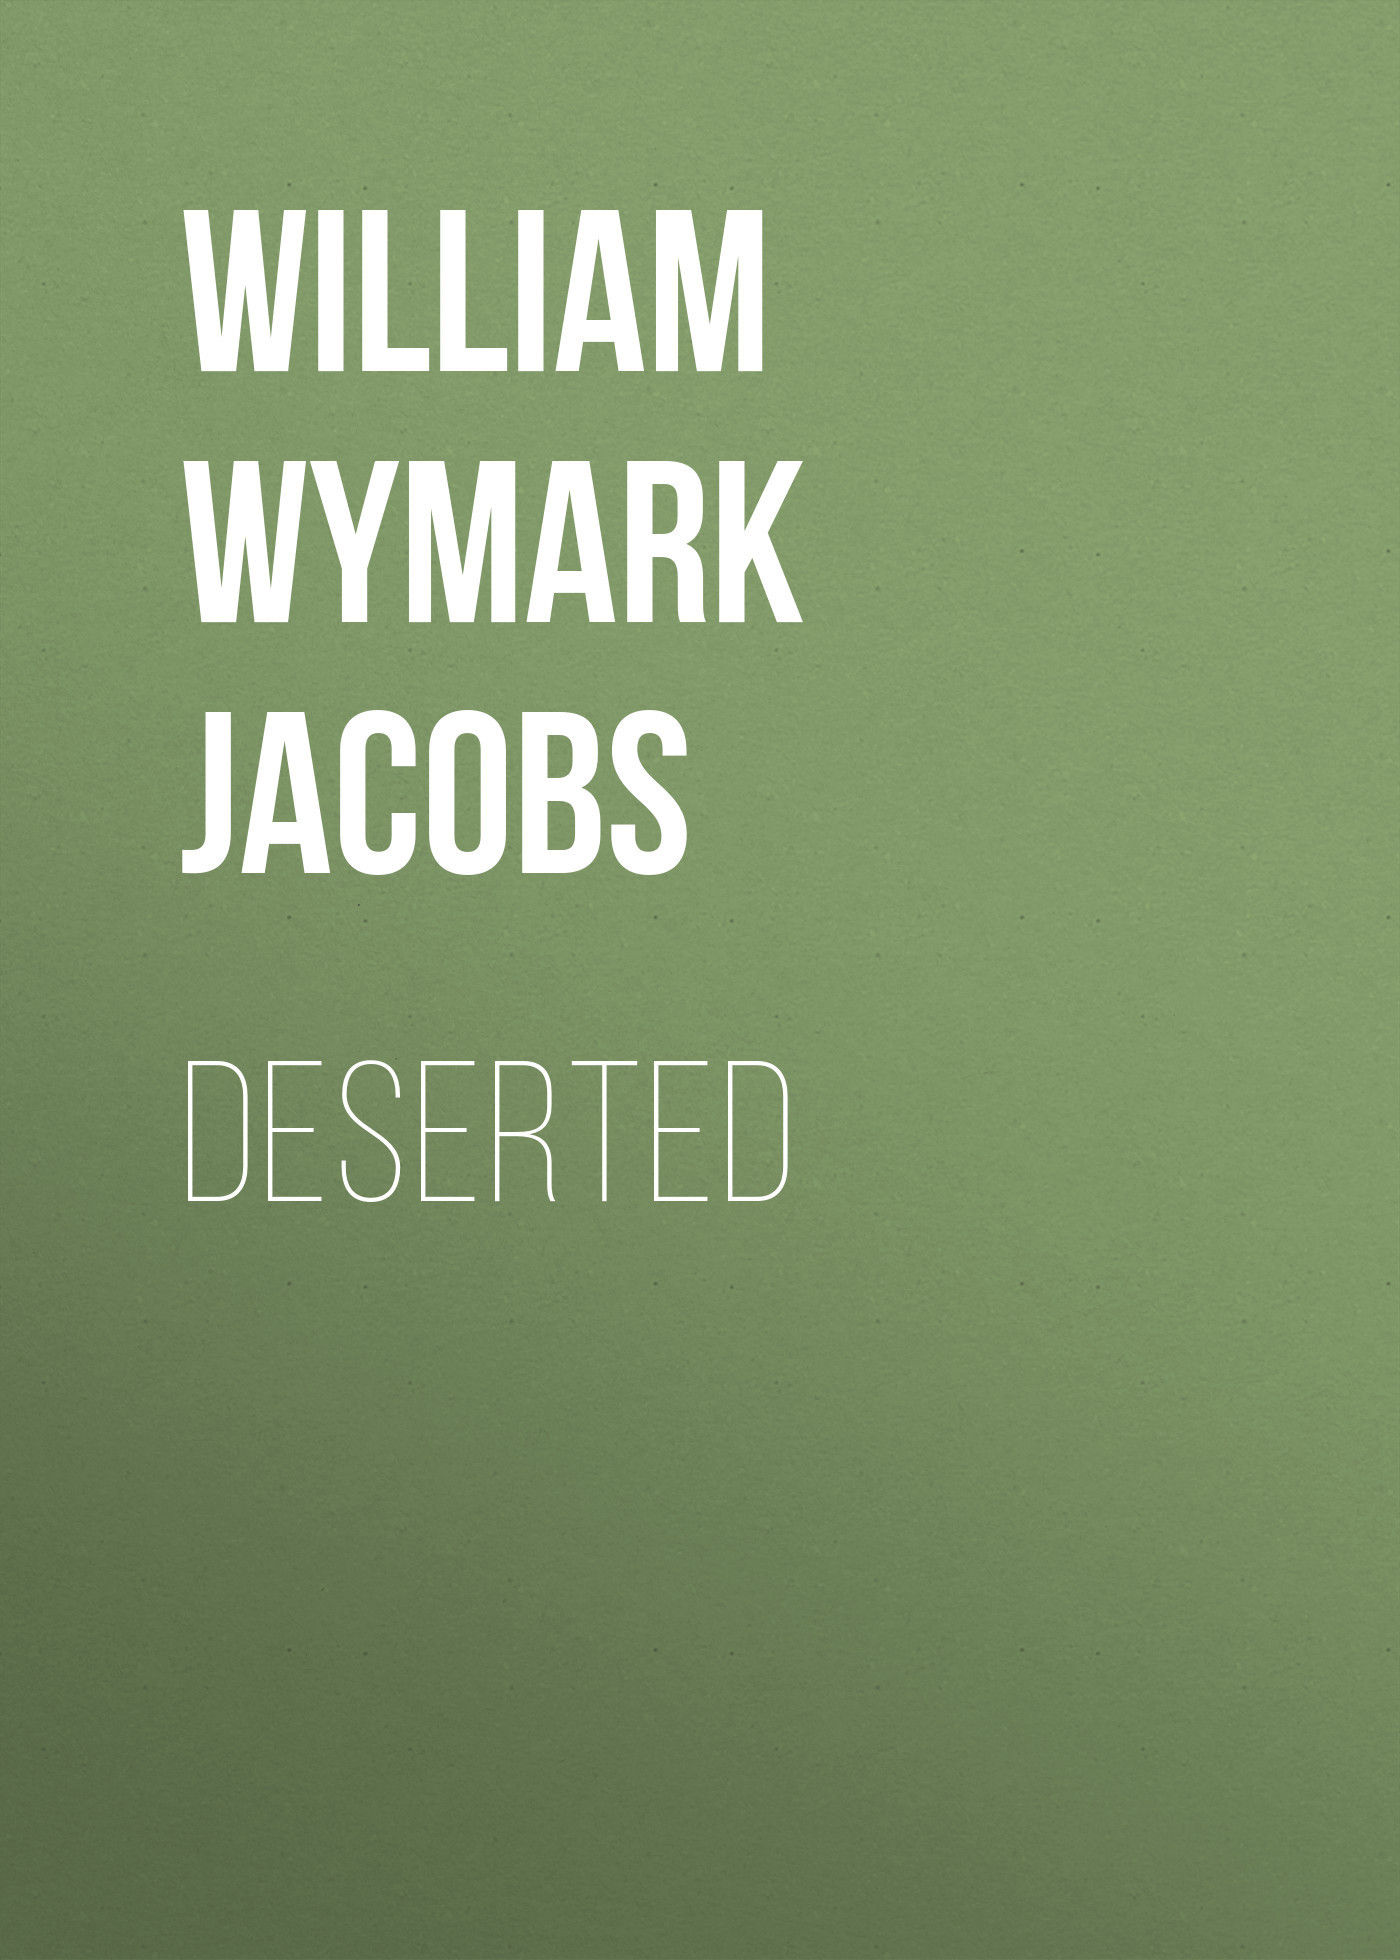 William Wymark Jacobs Deserted william wymark jacobs admiral peters